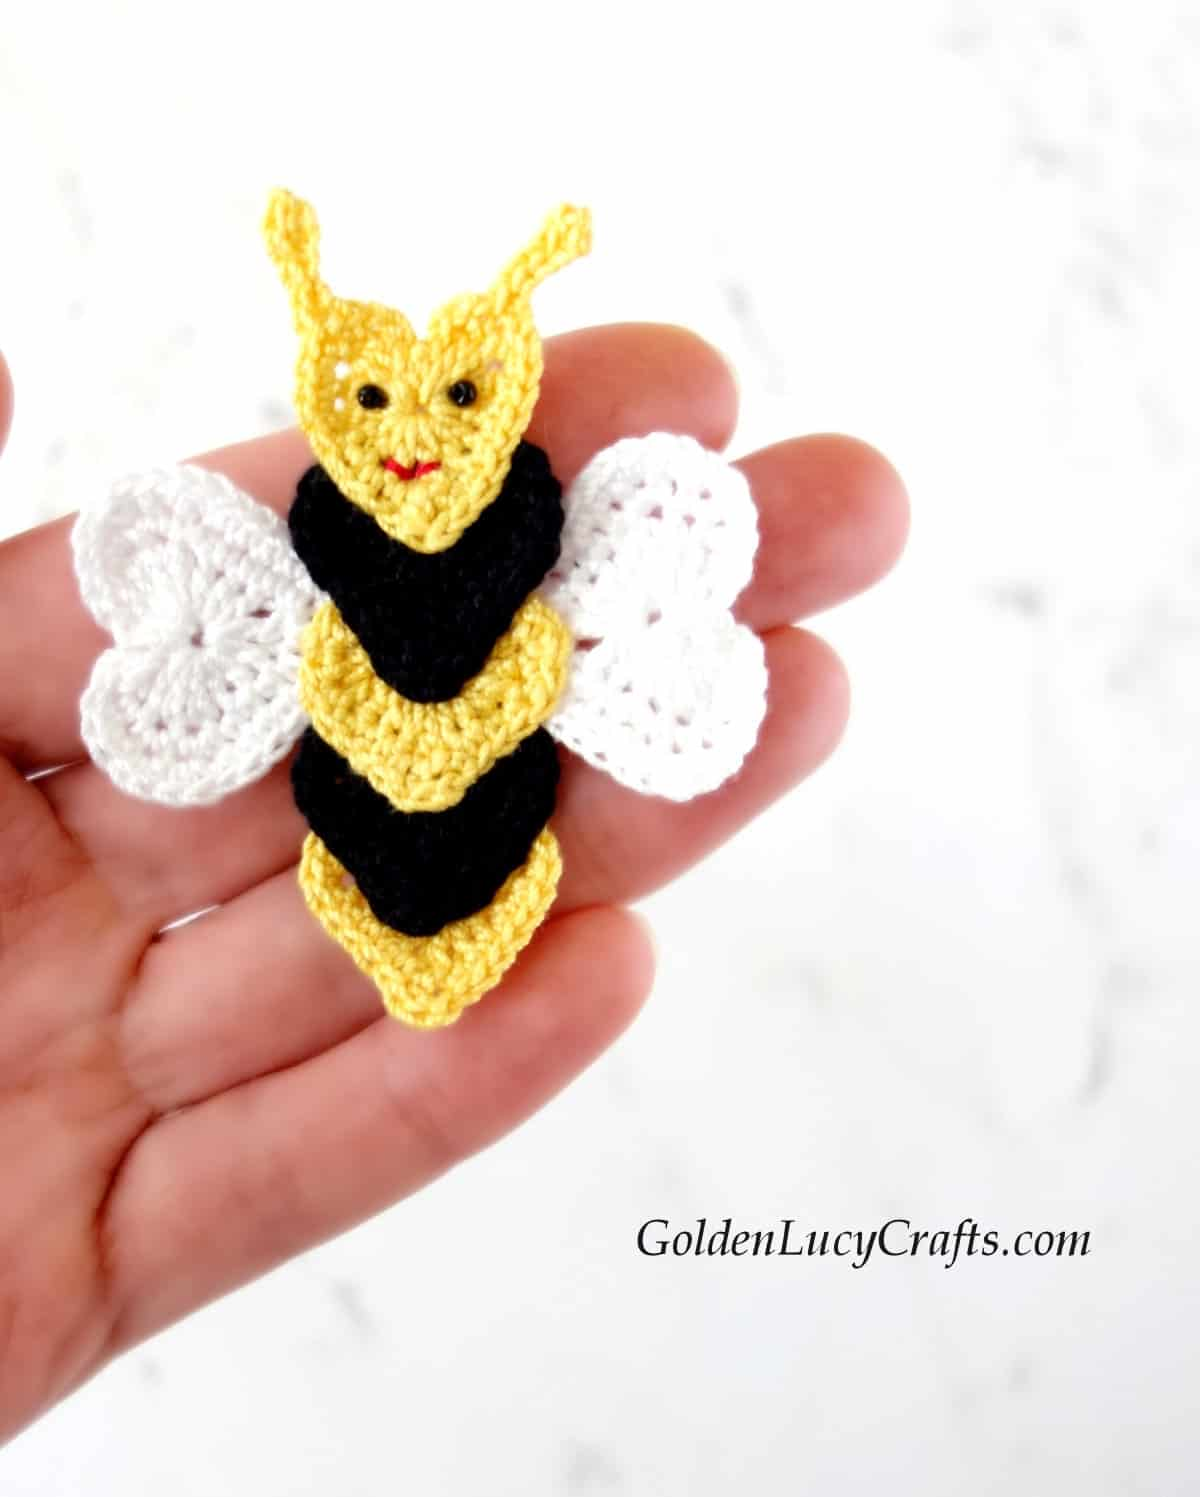 Crochet bee applique in the palm of a hand.